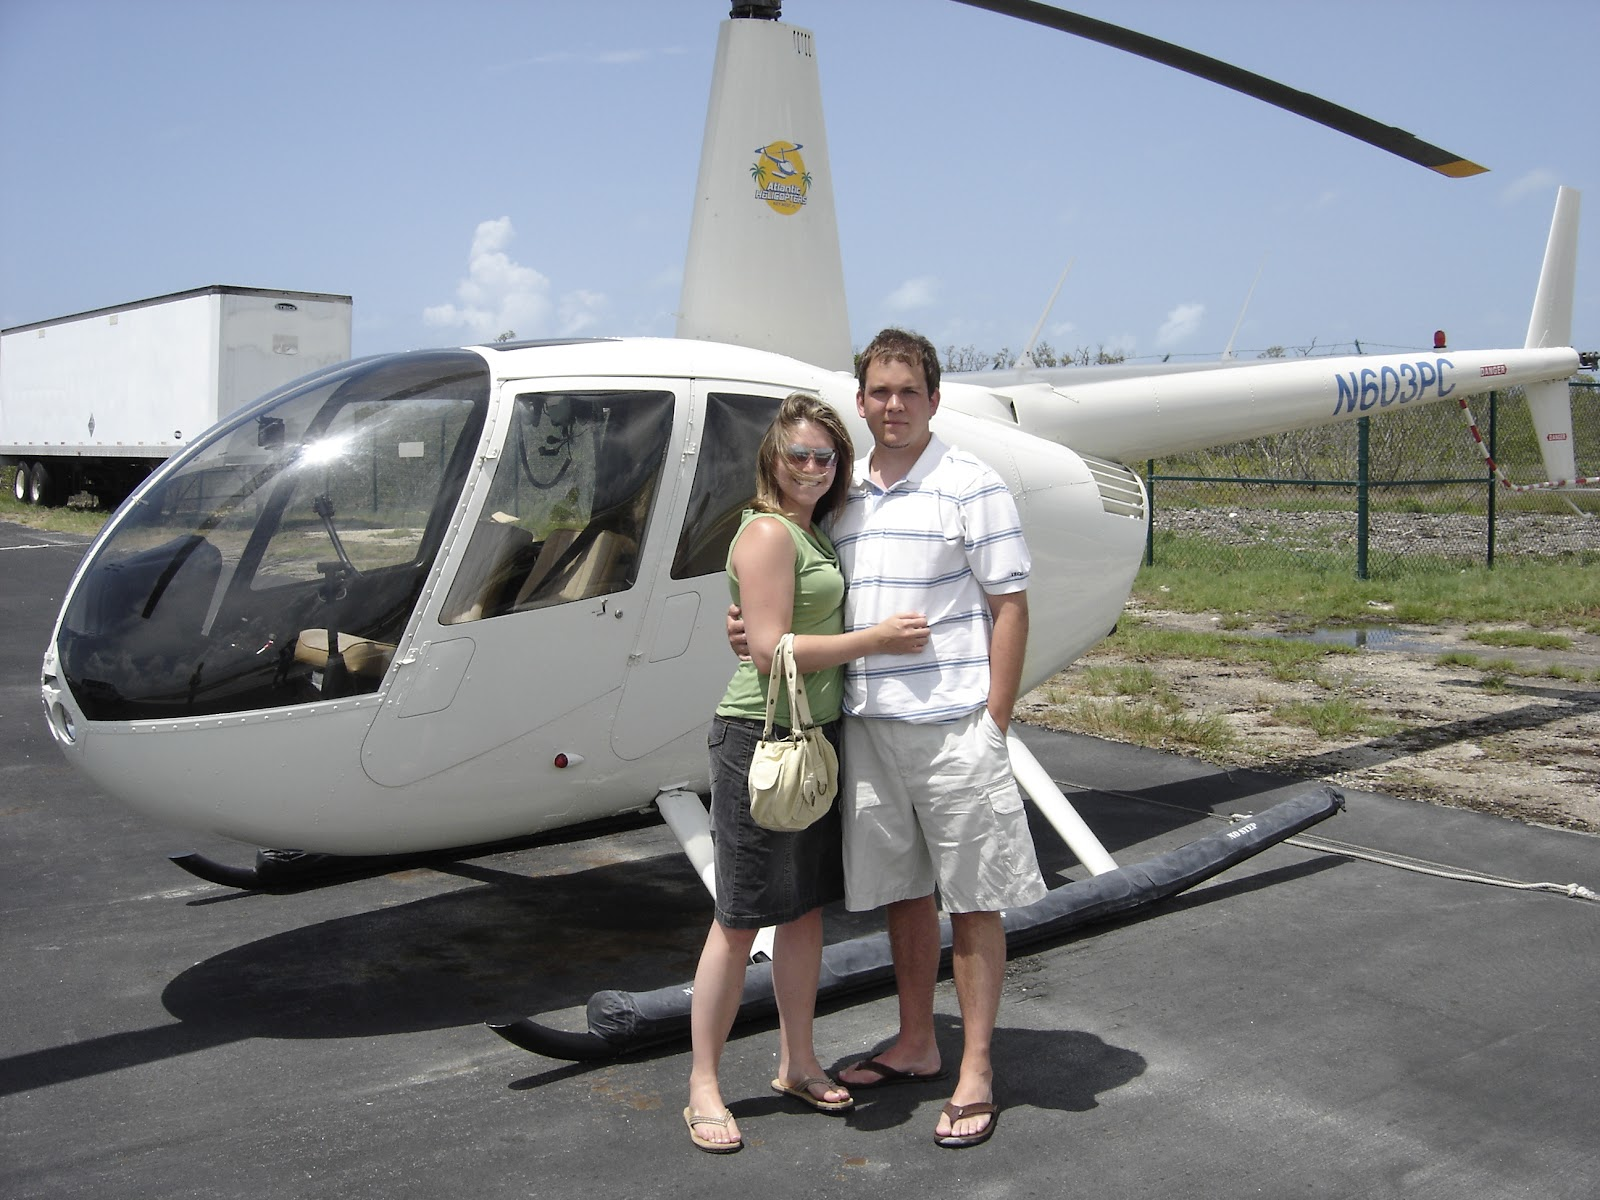 blue hawaiian helicopters reviews with Helicopter Tour Near Me on LocationPhotoDirectLink G60631 D310063 I17934011 Blue Hawaiian Helicopter Tours Maui Kahului Maui Hawaii together with Kauai Hawaii Helicopter With Kids besides Kauai Island further Blue Hawaiian Helicopters Big Island Review likewise Valley Isle Excursions Wailuku.